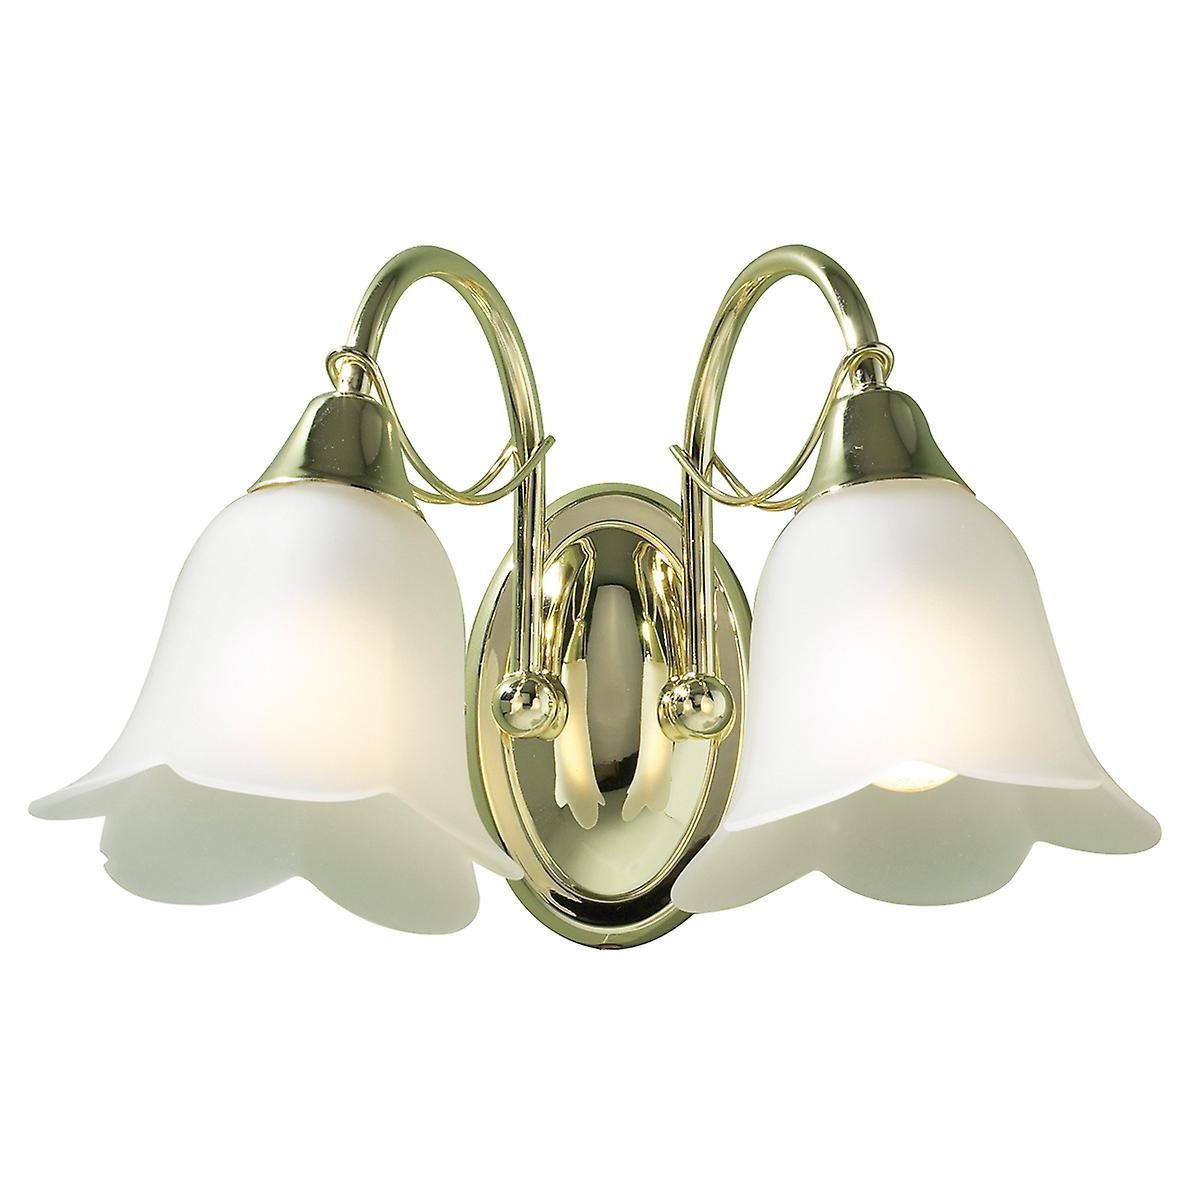 Dar DOU09 Doublet Traditional Switched Double Wall Light With Opaque Glass